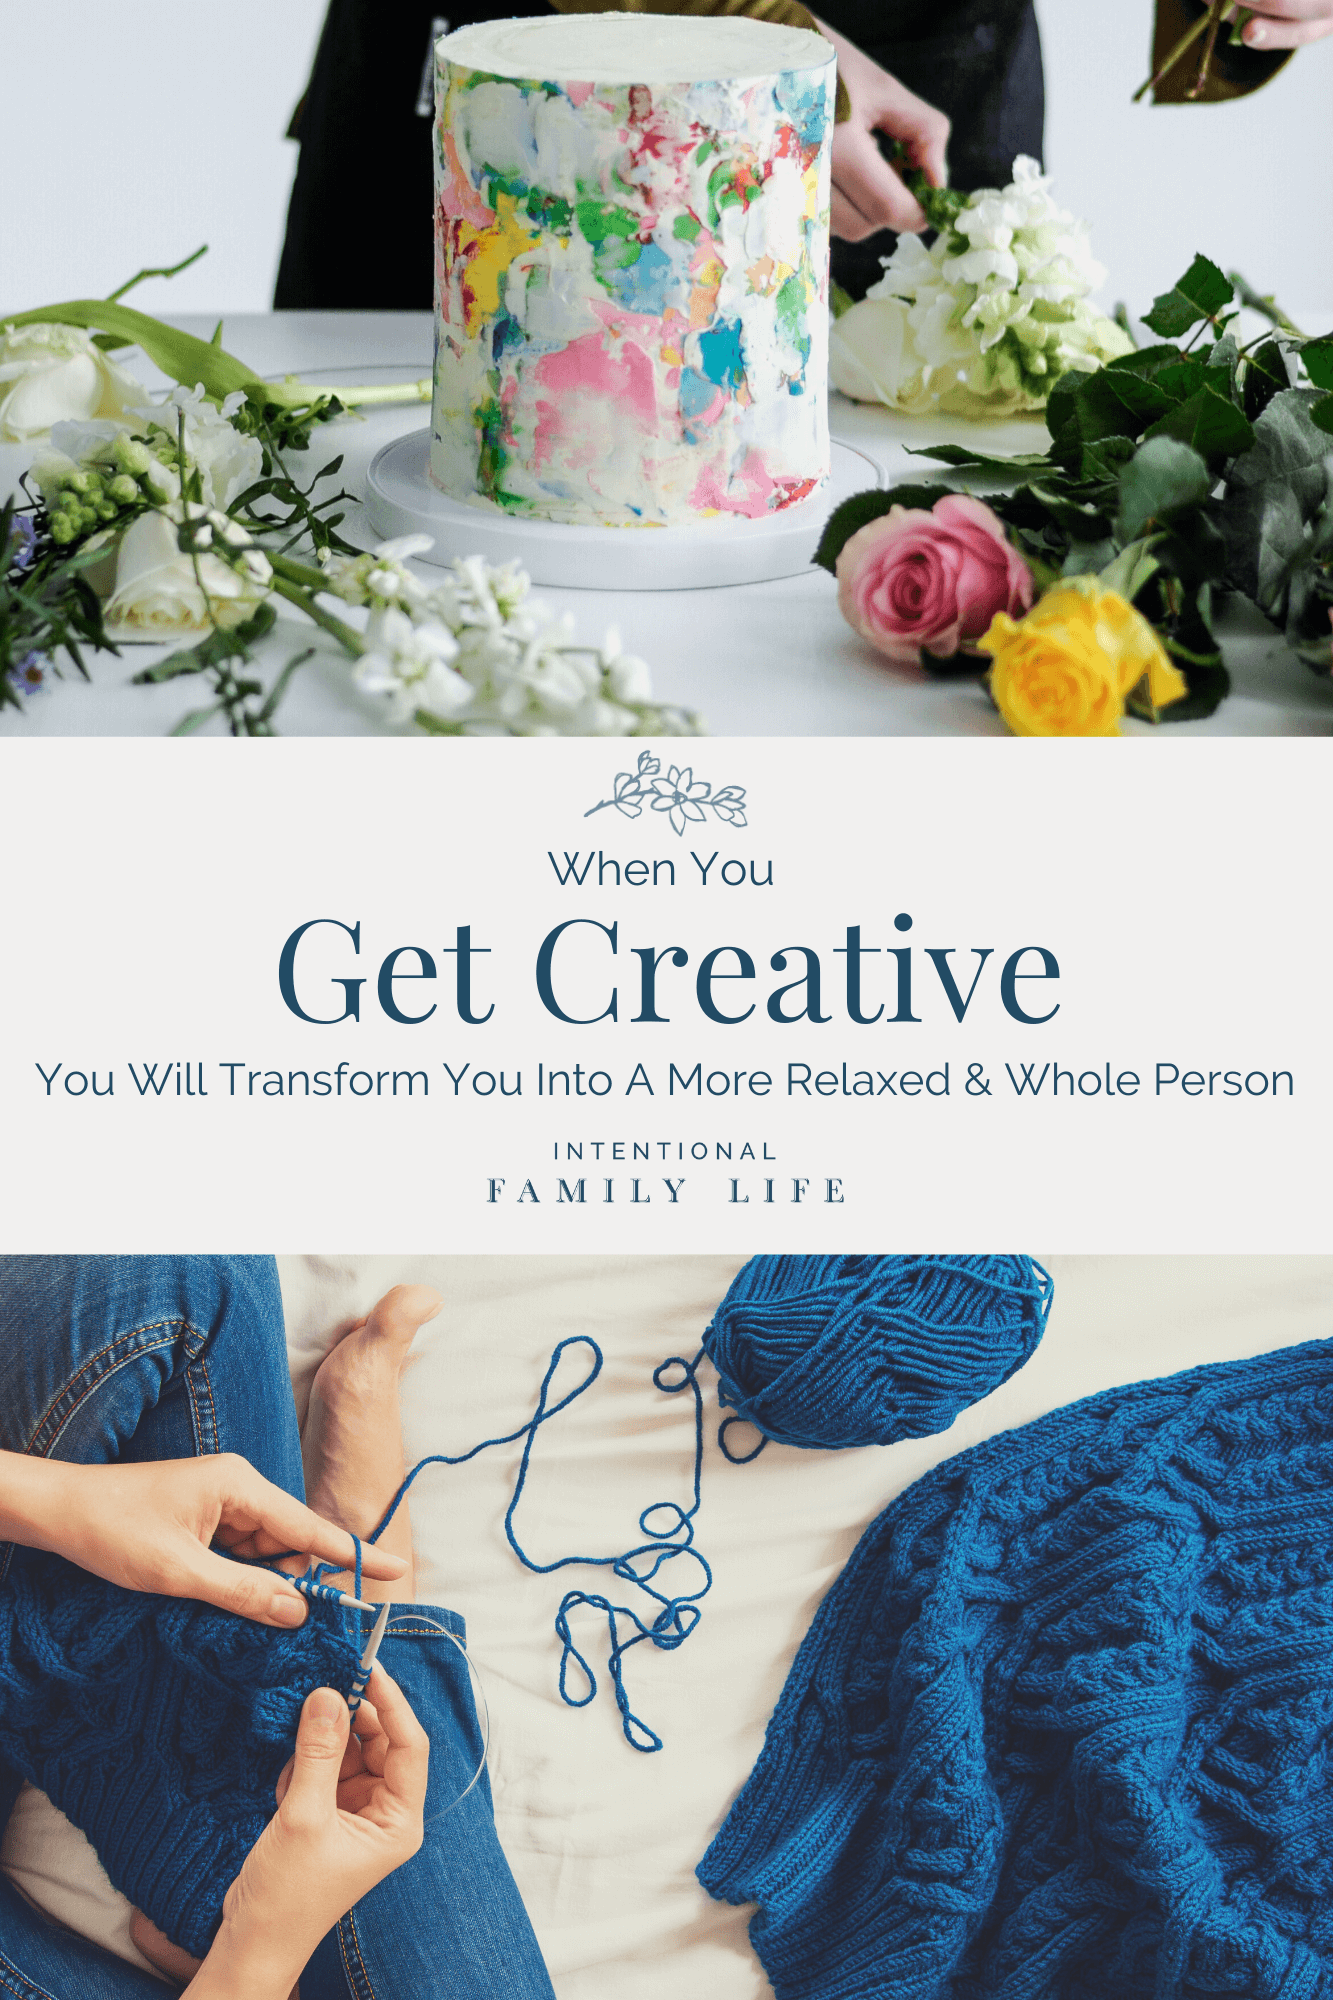 Women get creative - decorating a cake with fresh flowers or knitting by hand.